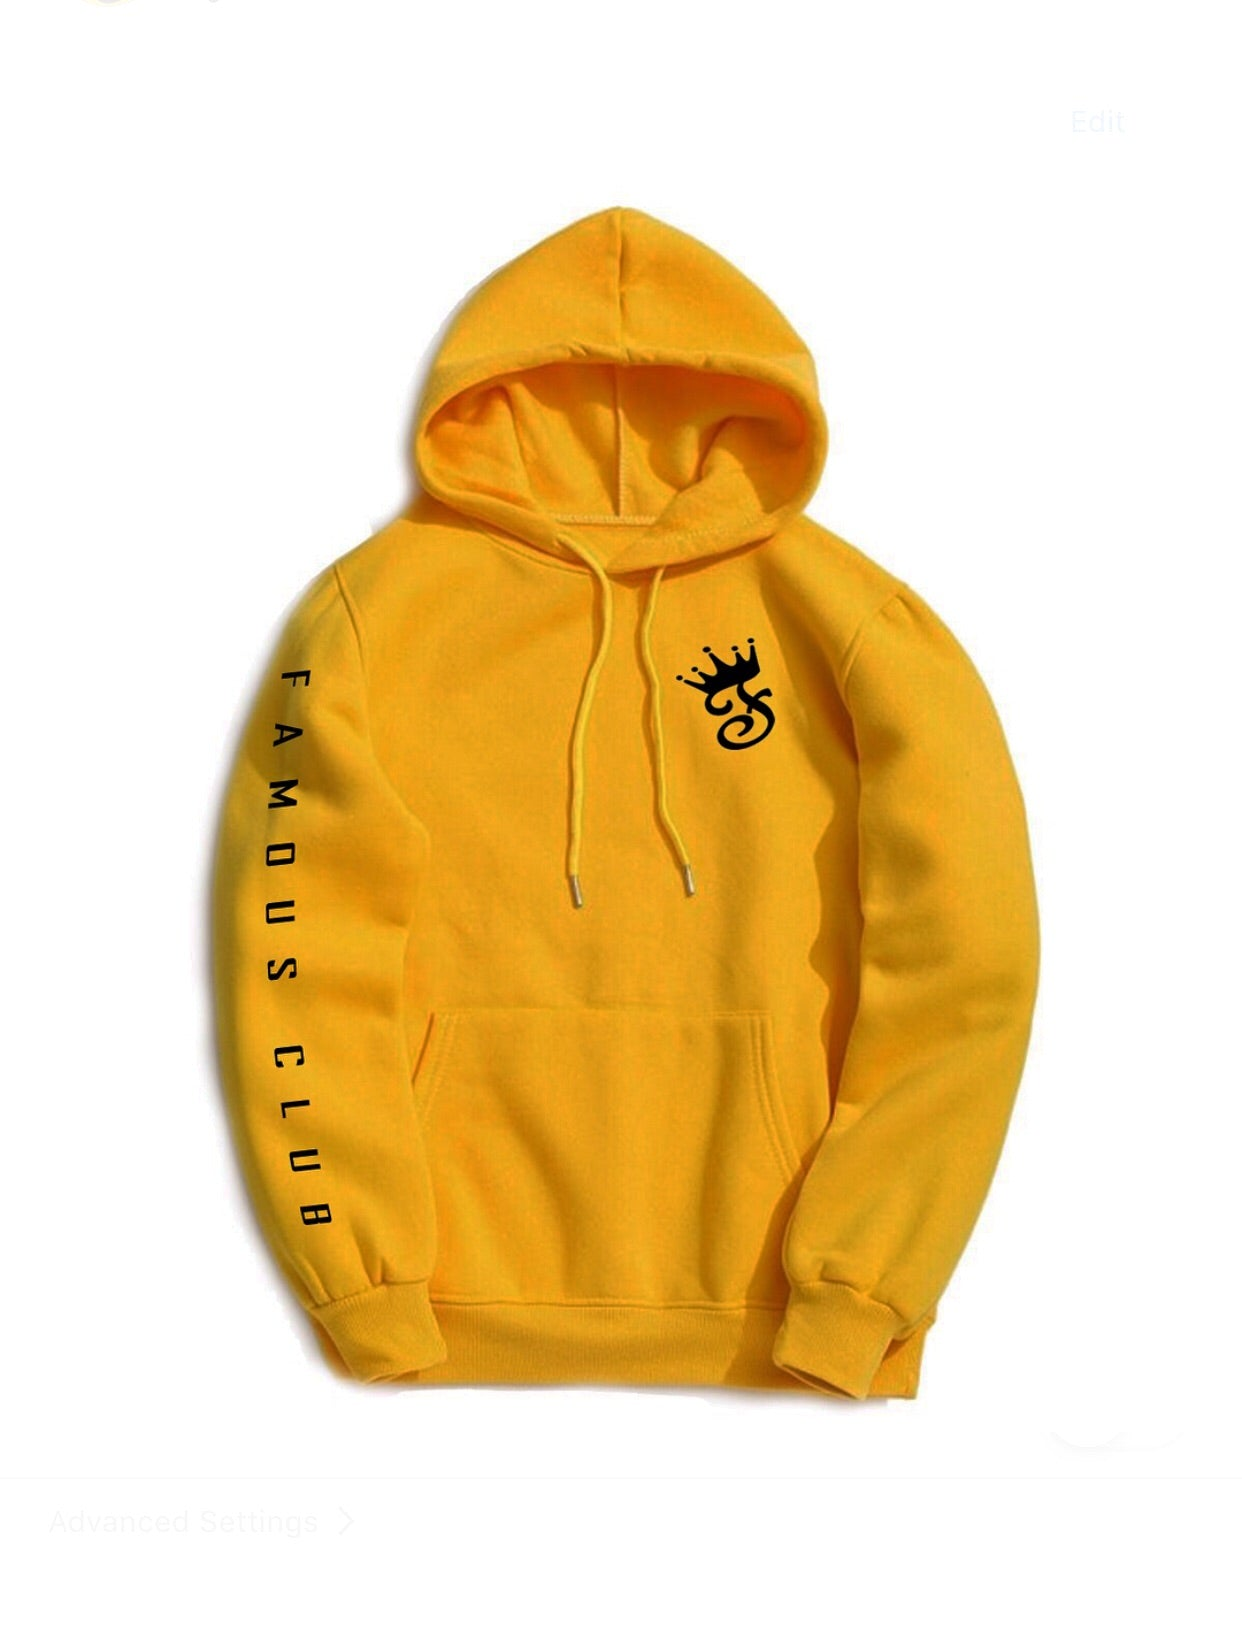 Golden Fame Hoodie - Famous Club Clothing